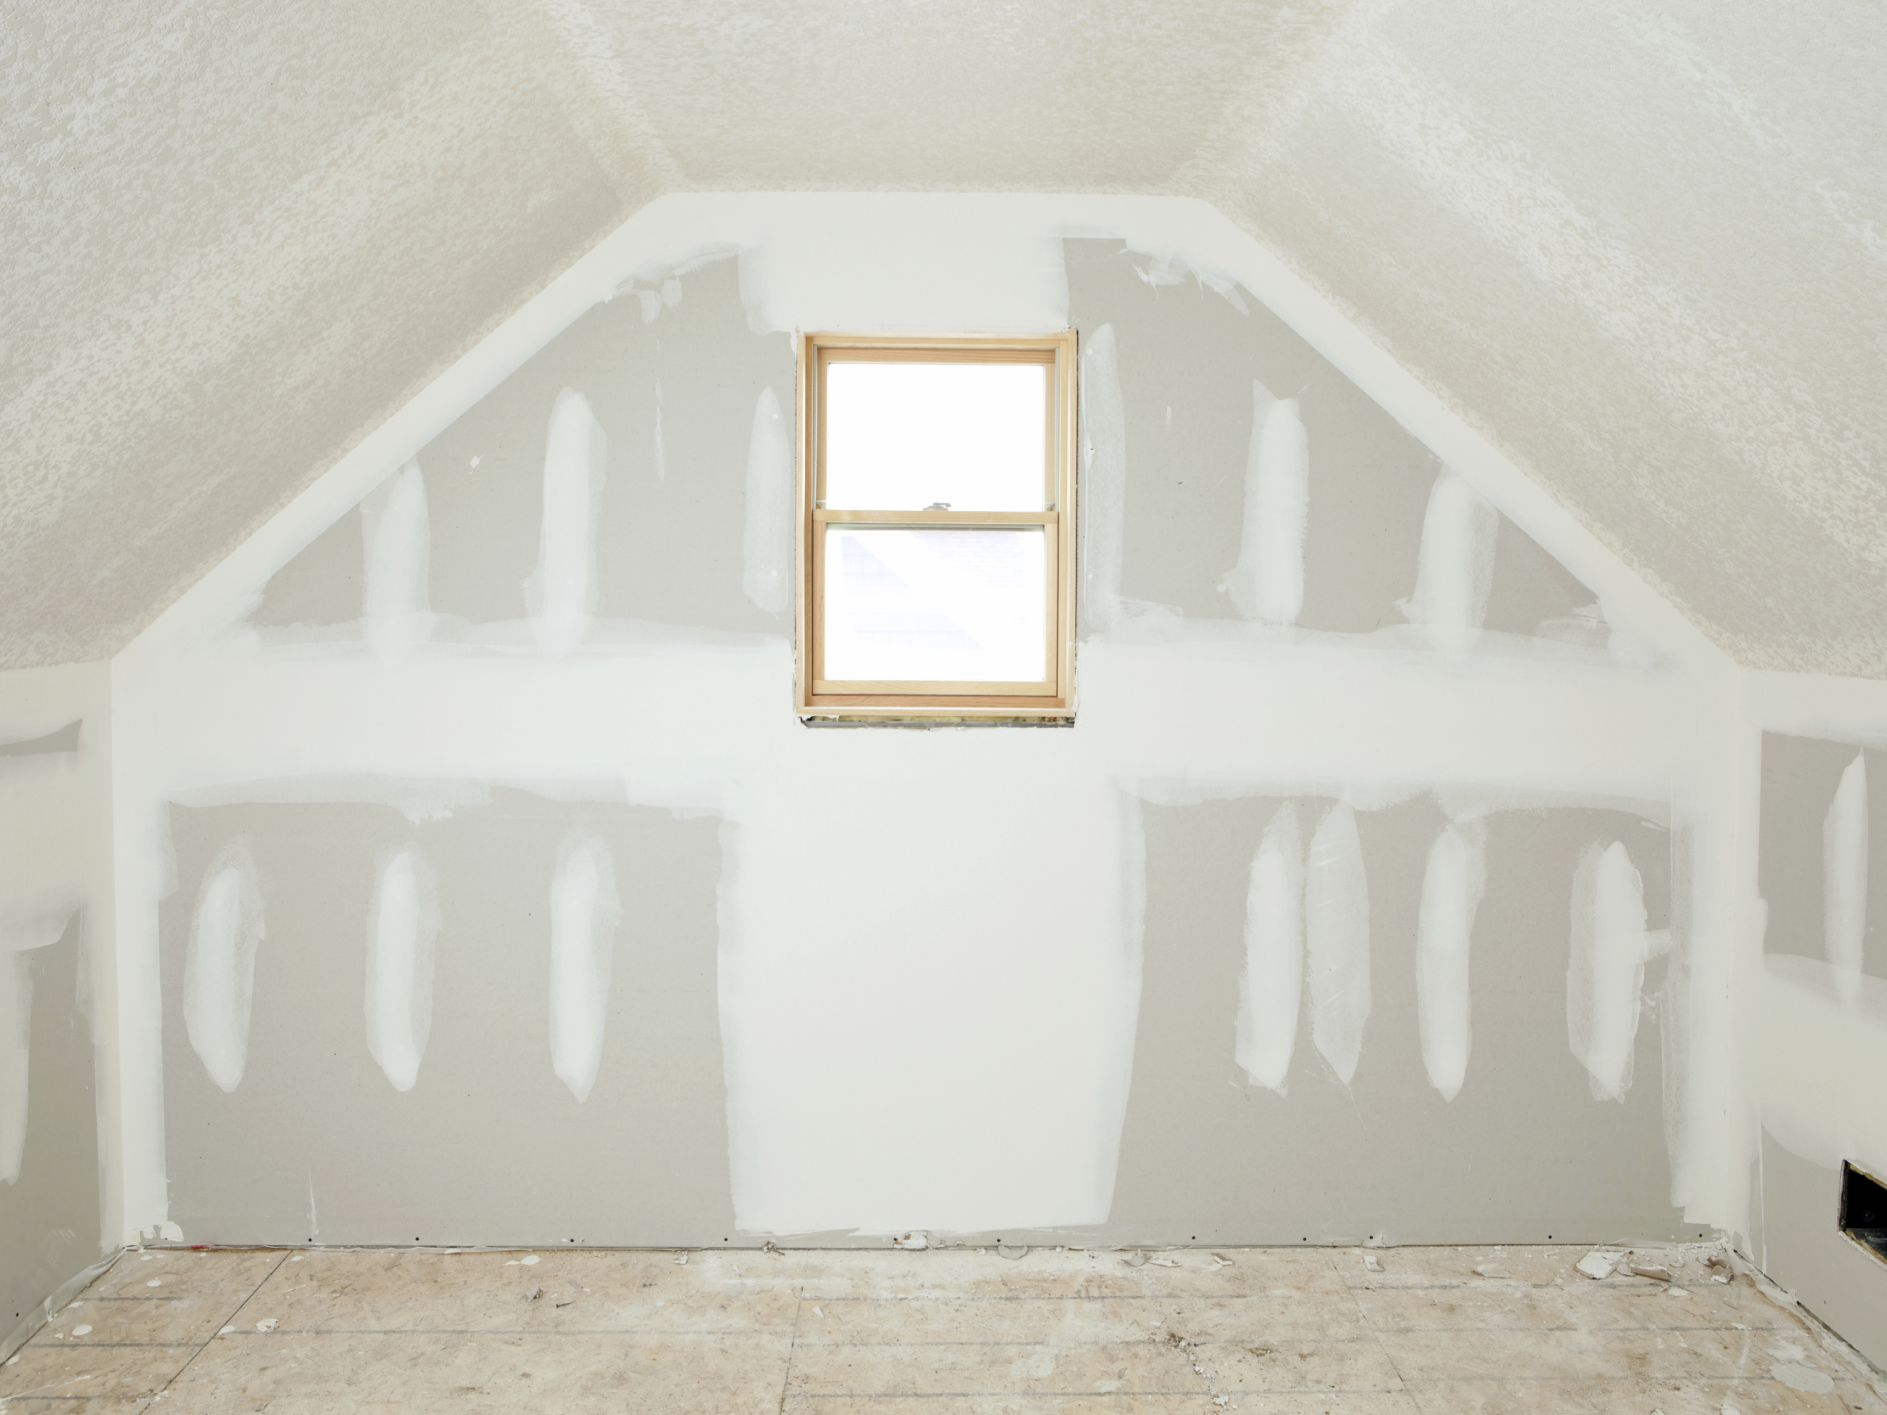 How To Wet Sand Drywall Avoid Room Dust